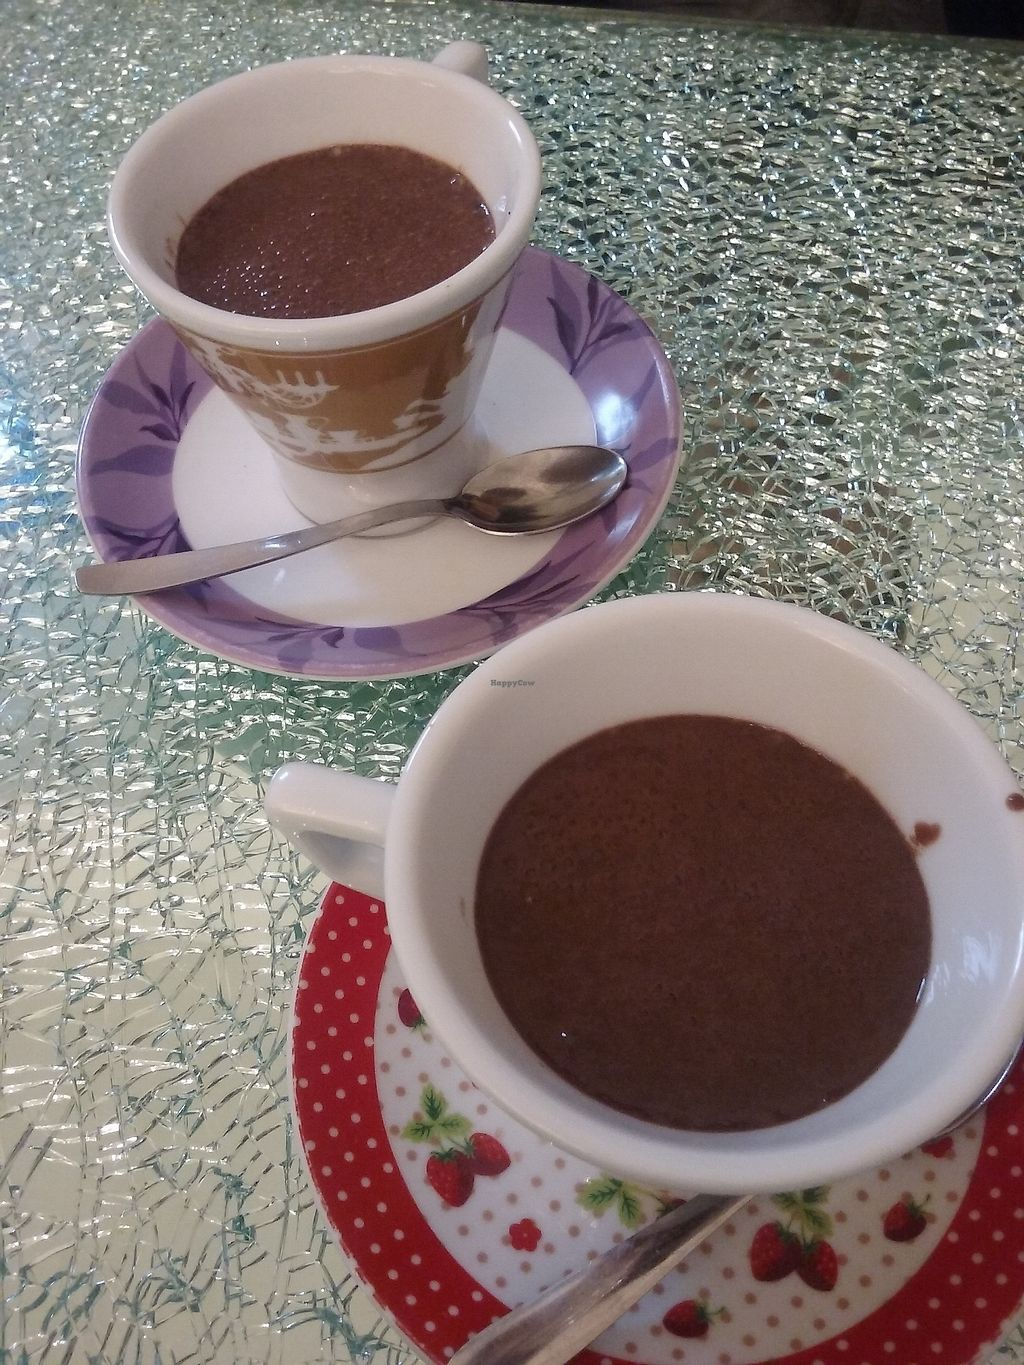 """Photo of Dolce Pisa  by <a href=""""/members/profile/laty"""">laty</a> <br/>Hot chocolate <br/> December 31, 2017  - <a href='/contact/abuse/image/93859/341419'>Report</a>"""